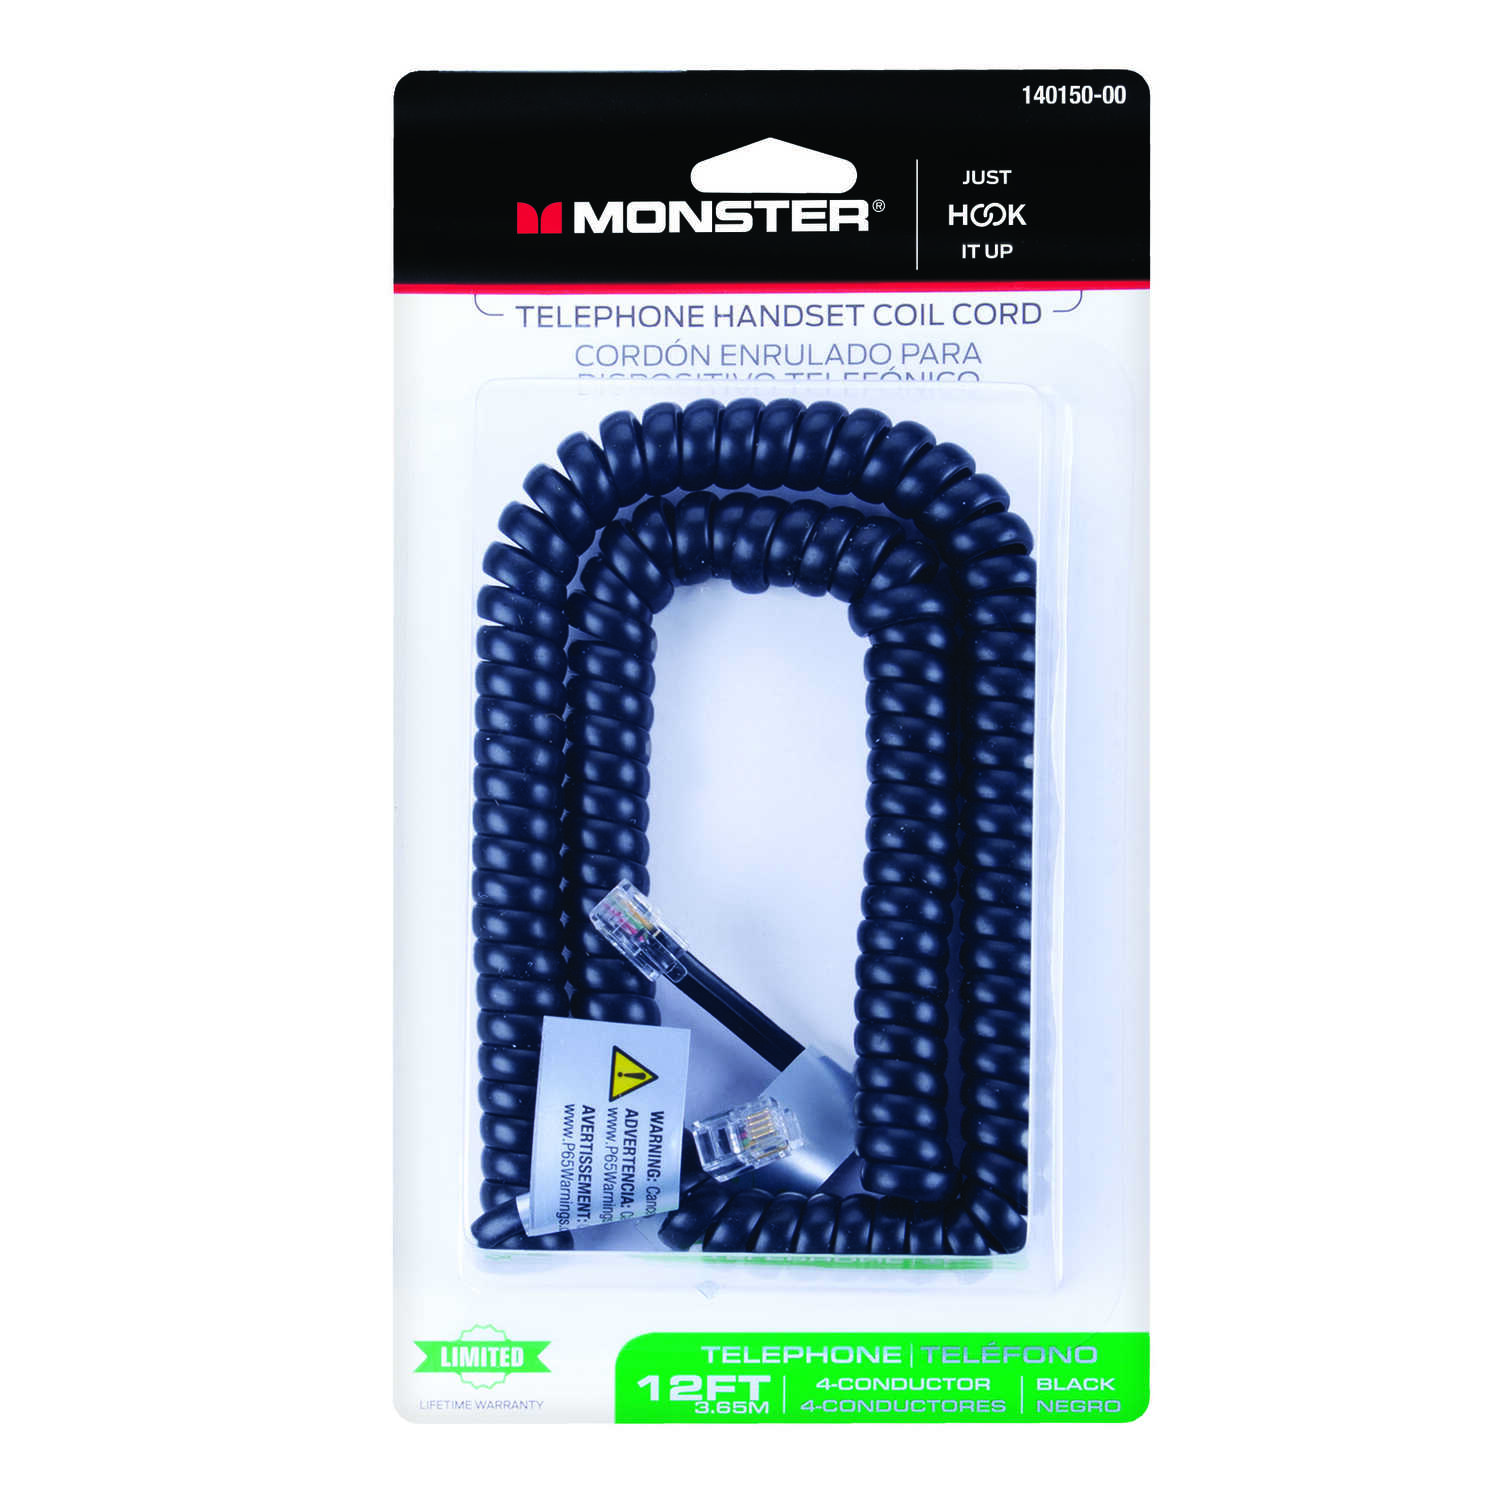 Monster Cable Telephone Handset Coil Cord 4 Conductor 12 ft. Black Card